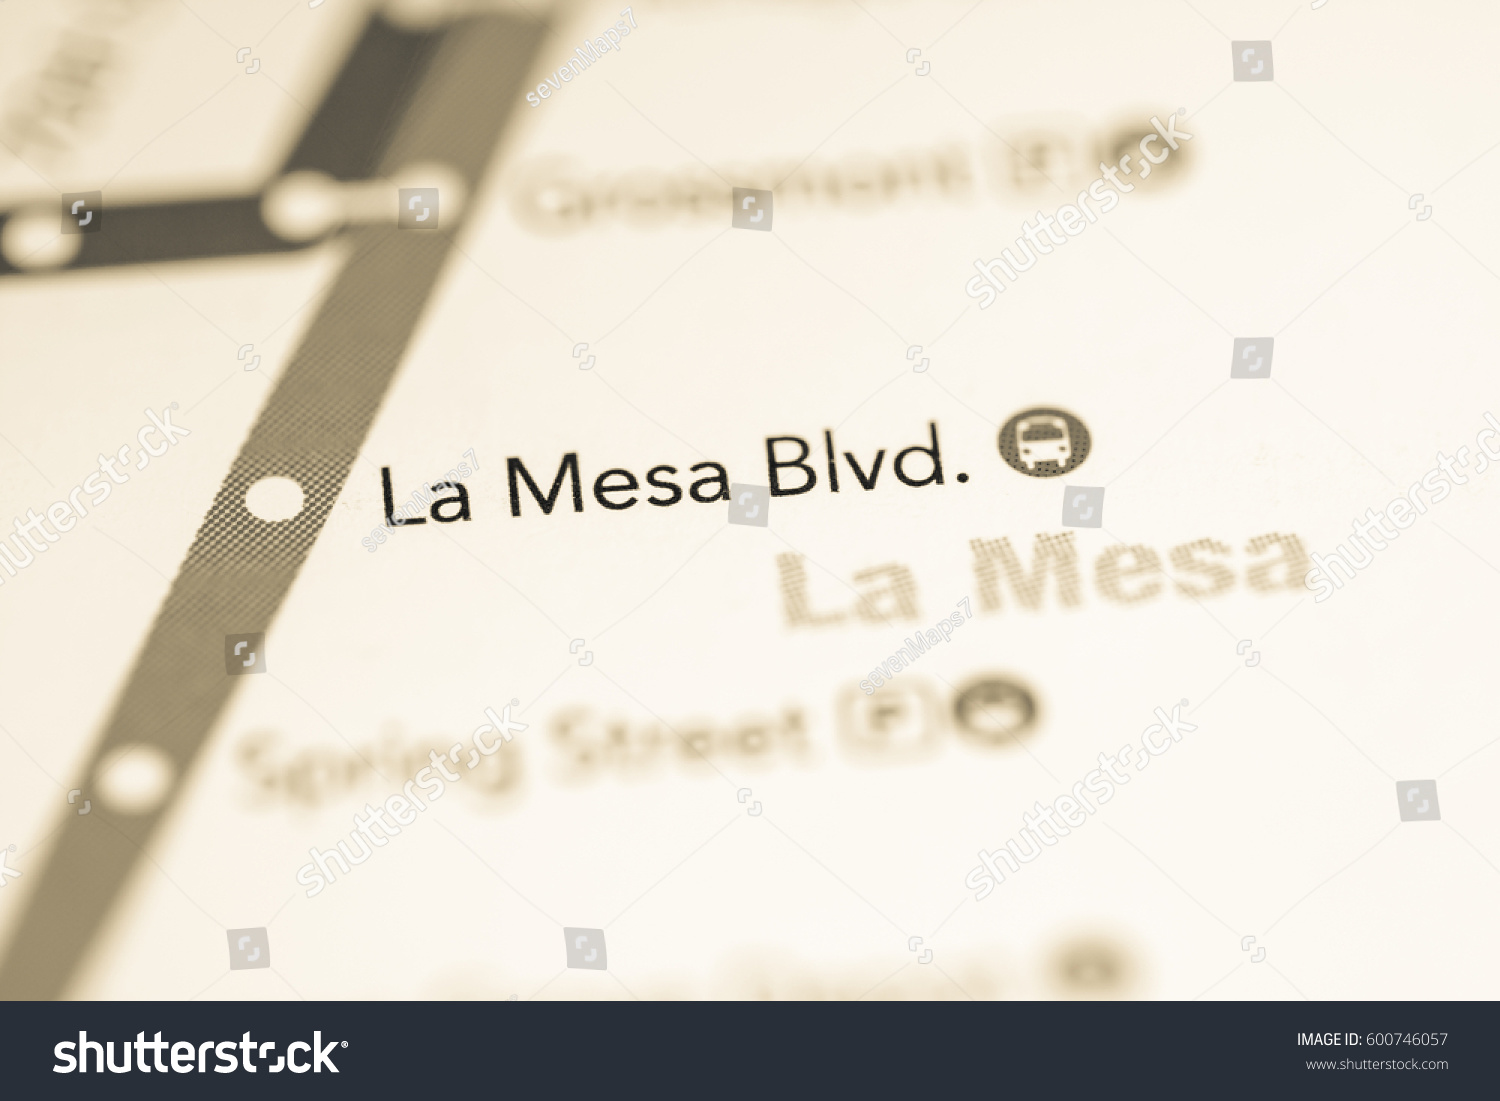 San Diego Subway Map.La Mesa Blvd Station San Diego Stock Photo Edit Now 600746057